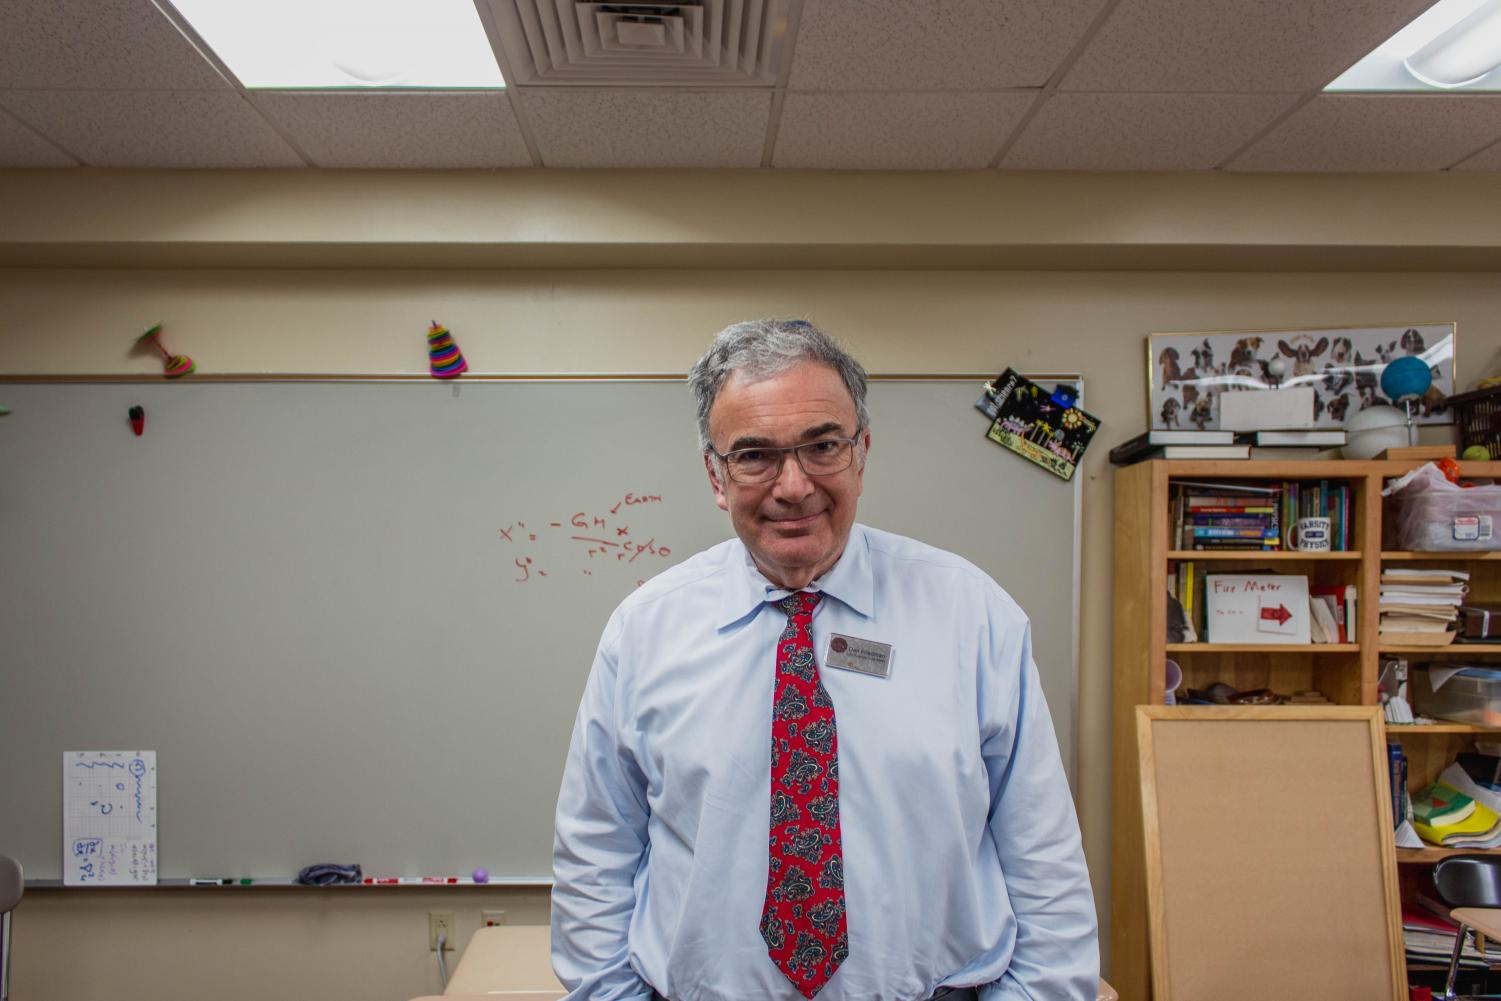 Daniel Friedman, a beloved Upper School math teacher, received the 2019 Lamp of Knowledge Award earlier this year.